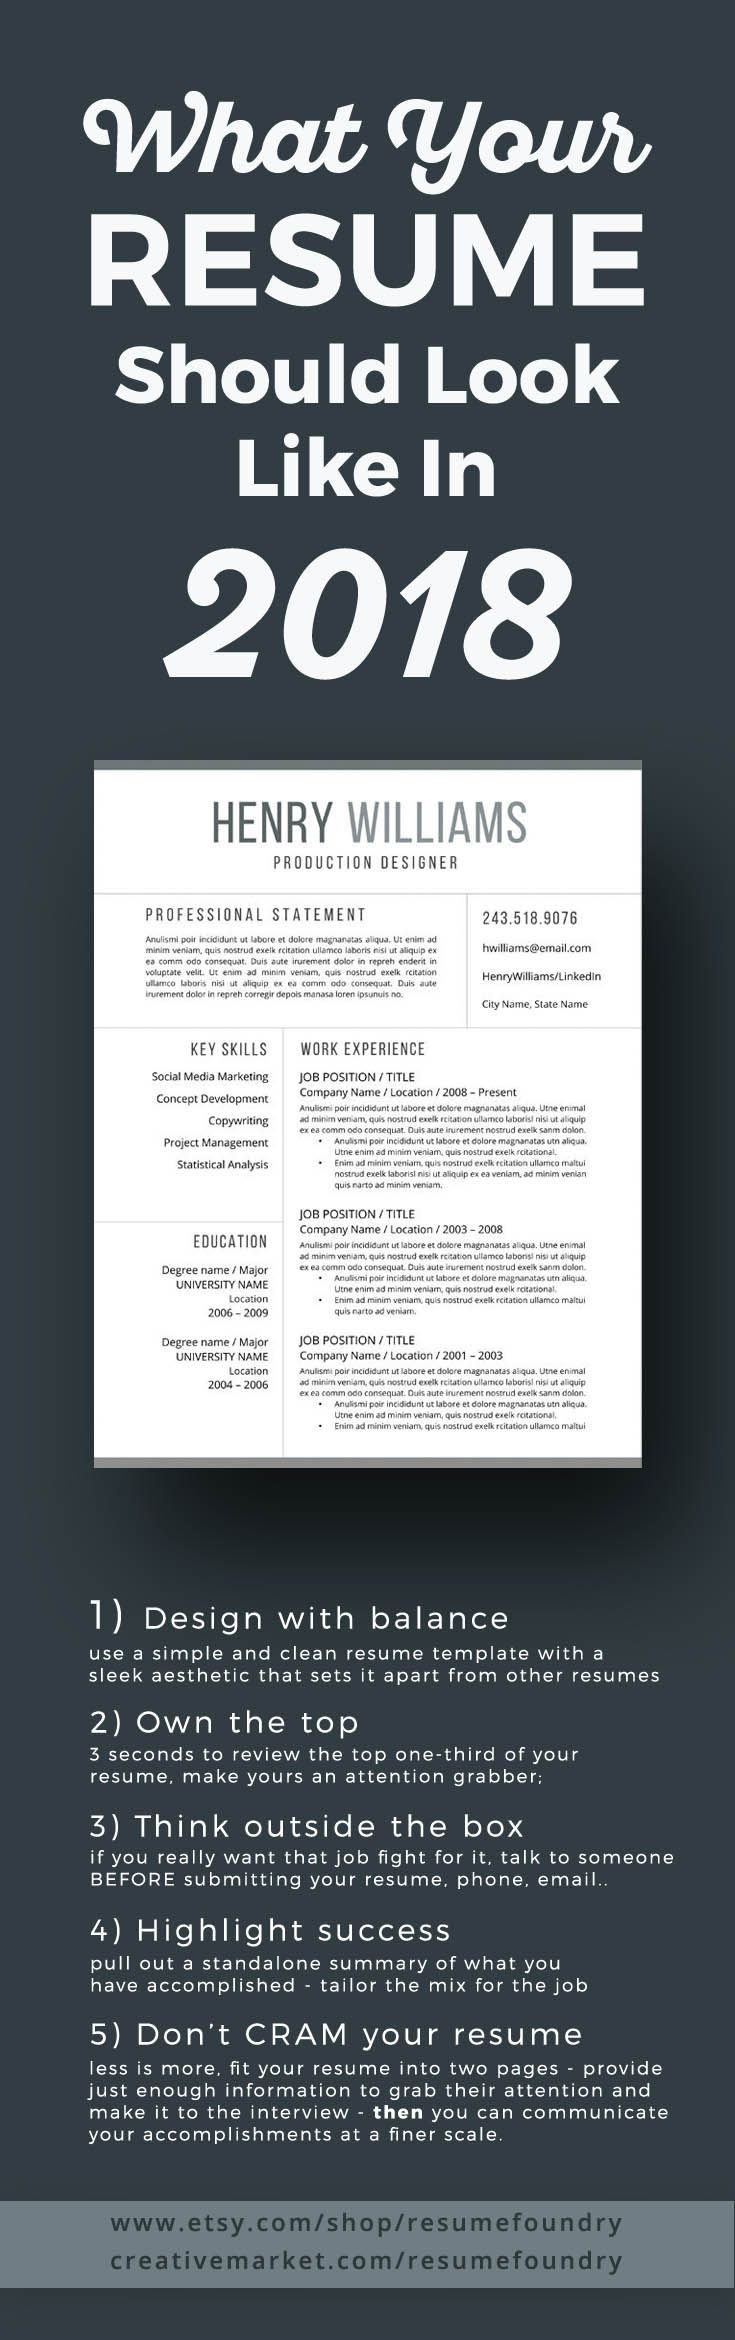 Use A Simple And Clean Resume Template With Sleek